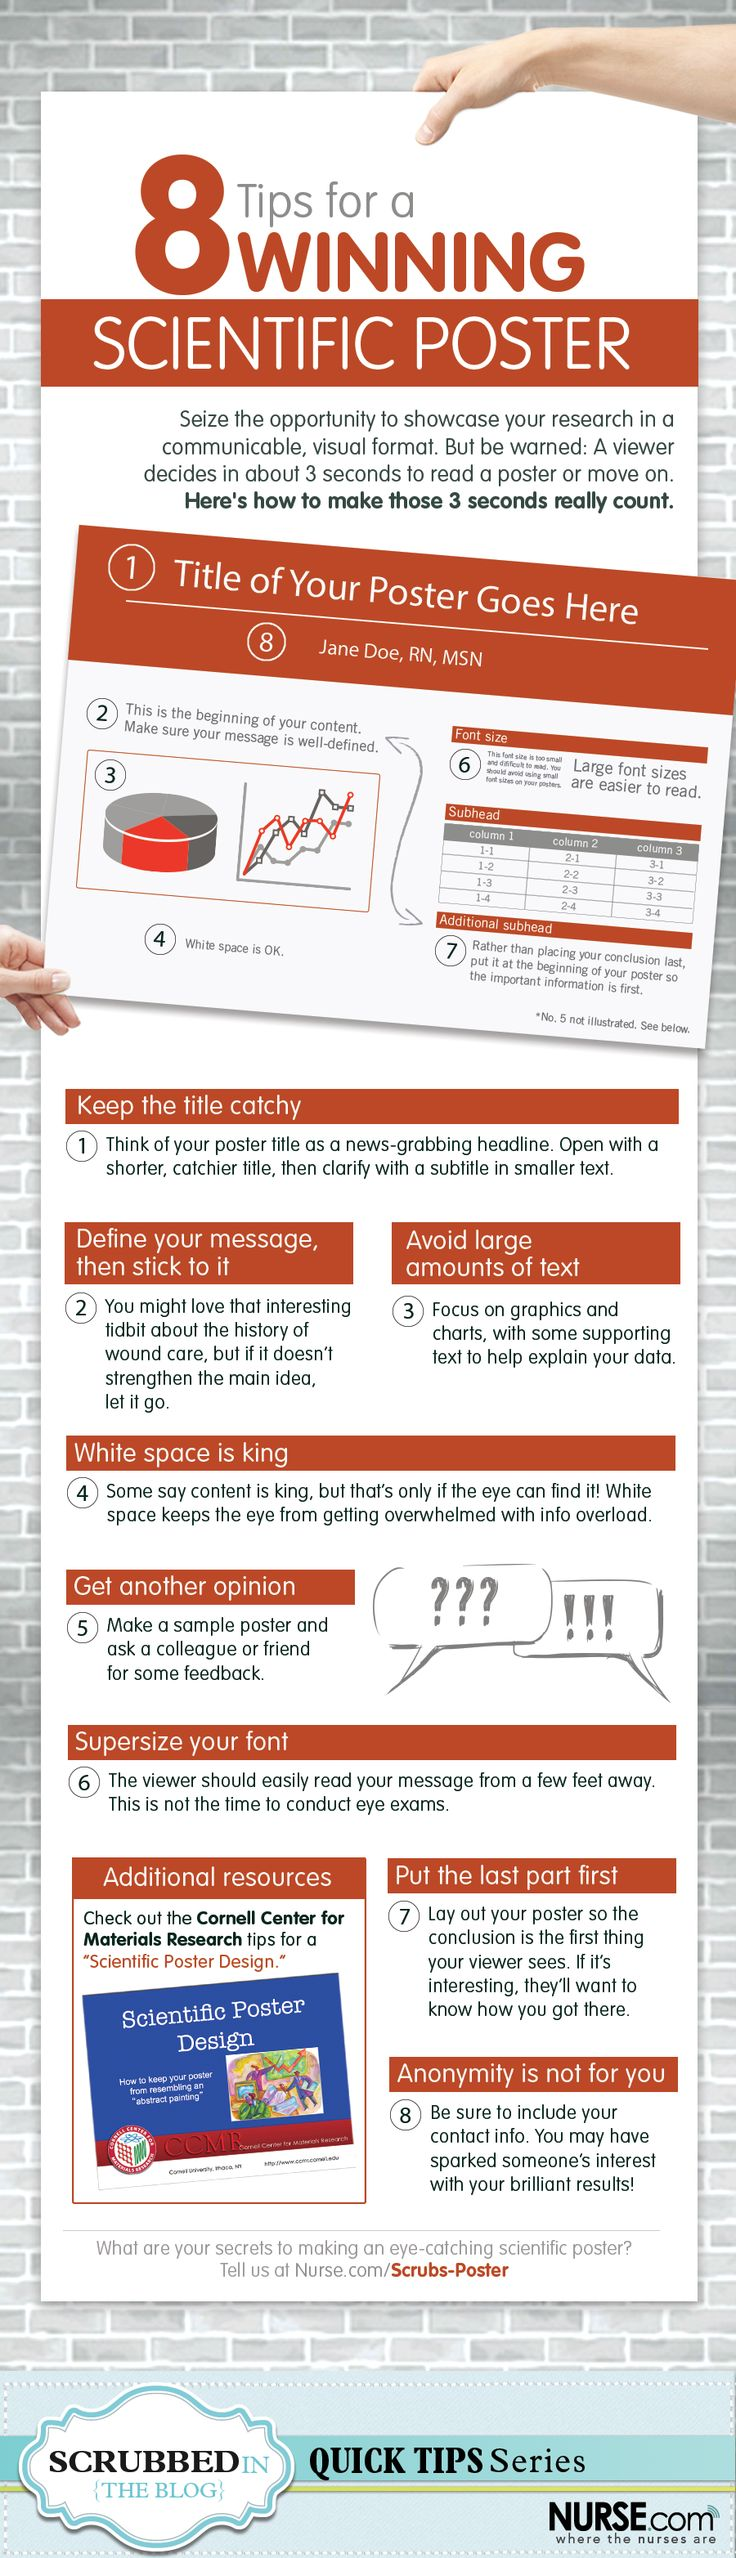 Creating a science poster isn't exactly brain surgery. But making a visually effective poster that will represent your research and make an impact isn't as simple as it sounds, either.  Give your research the spotlight it deserves. Print and share this infographic, filled with pro tips that will make your scientific poster outshine the rest.